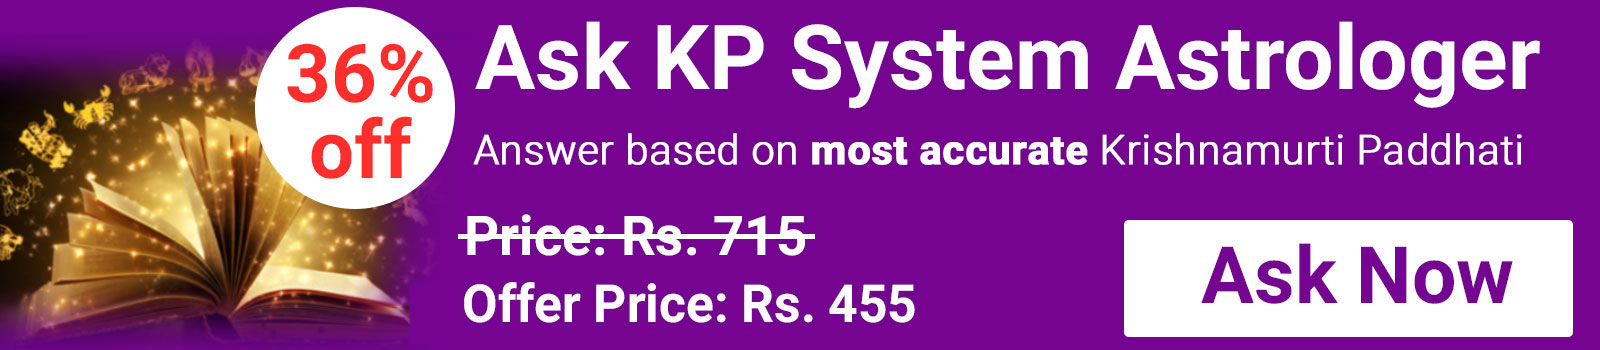 Ask KP Astrologer